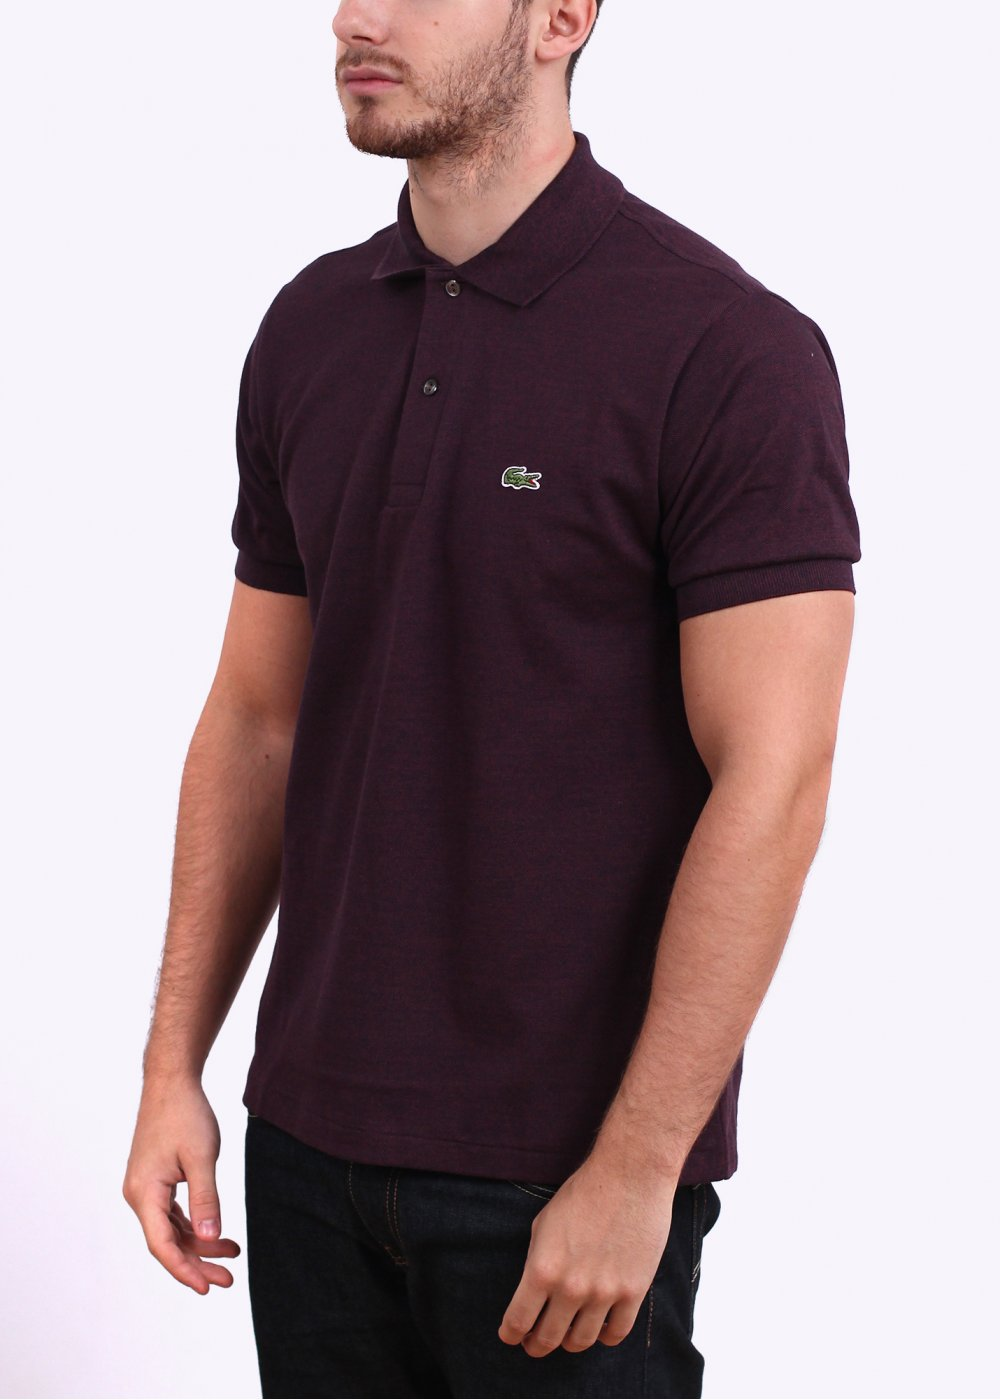 Lacoste heather polo shirt burgundy lacoste from triads uk - Lacoste poloshirt weiay ...